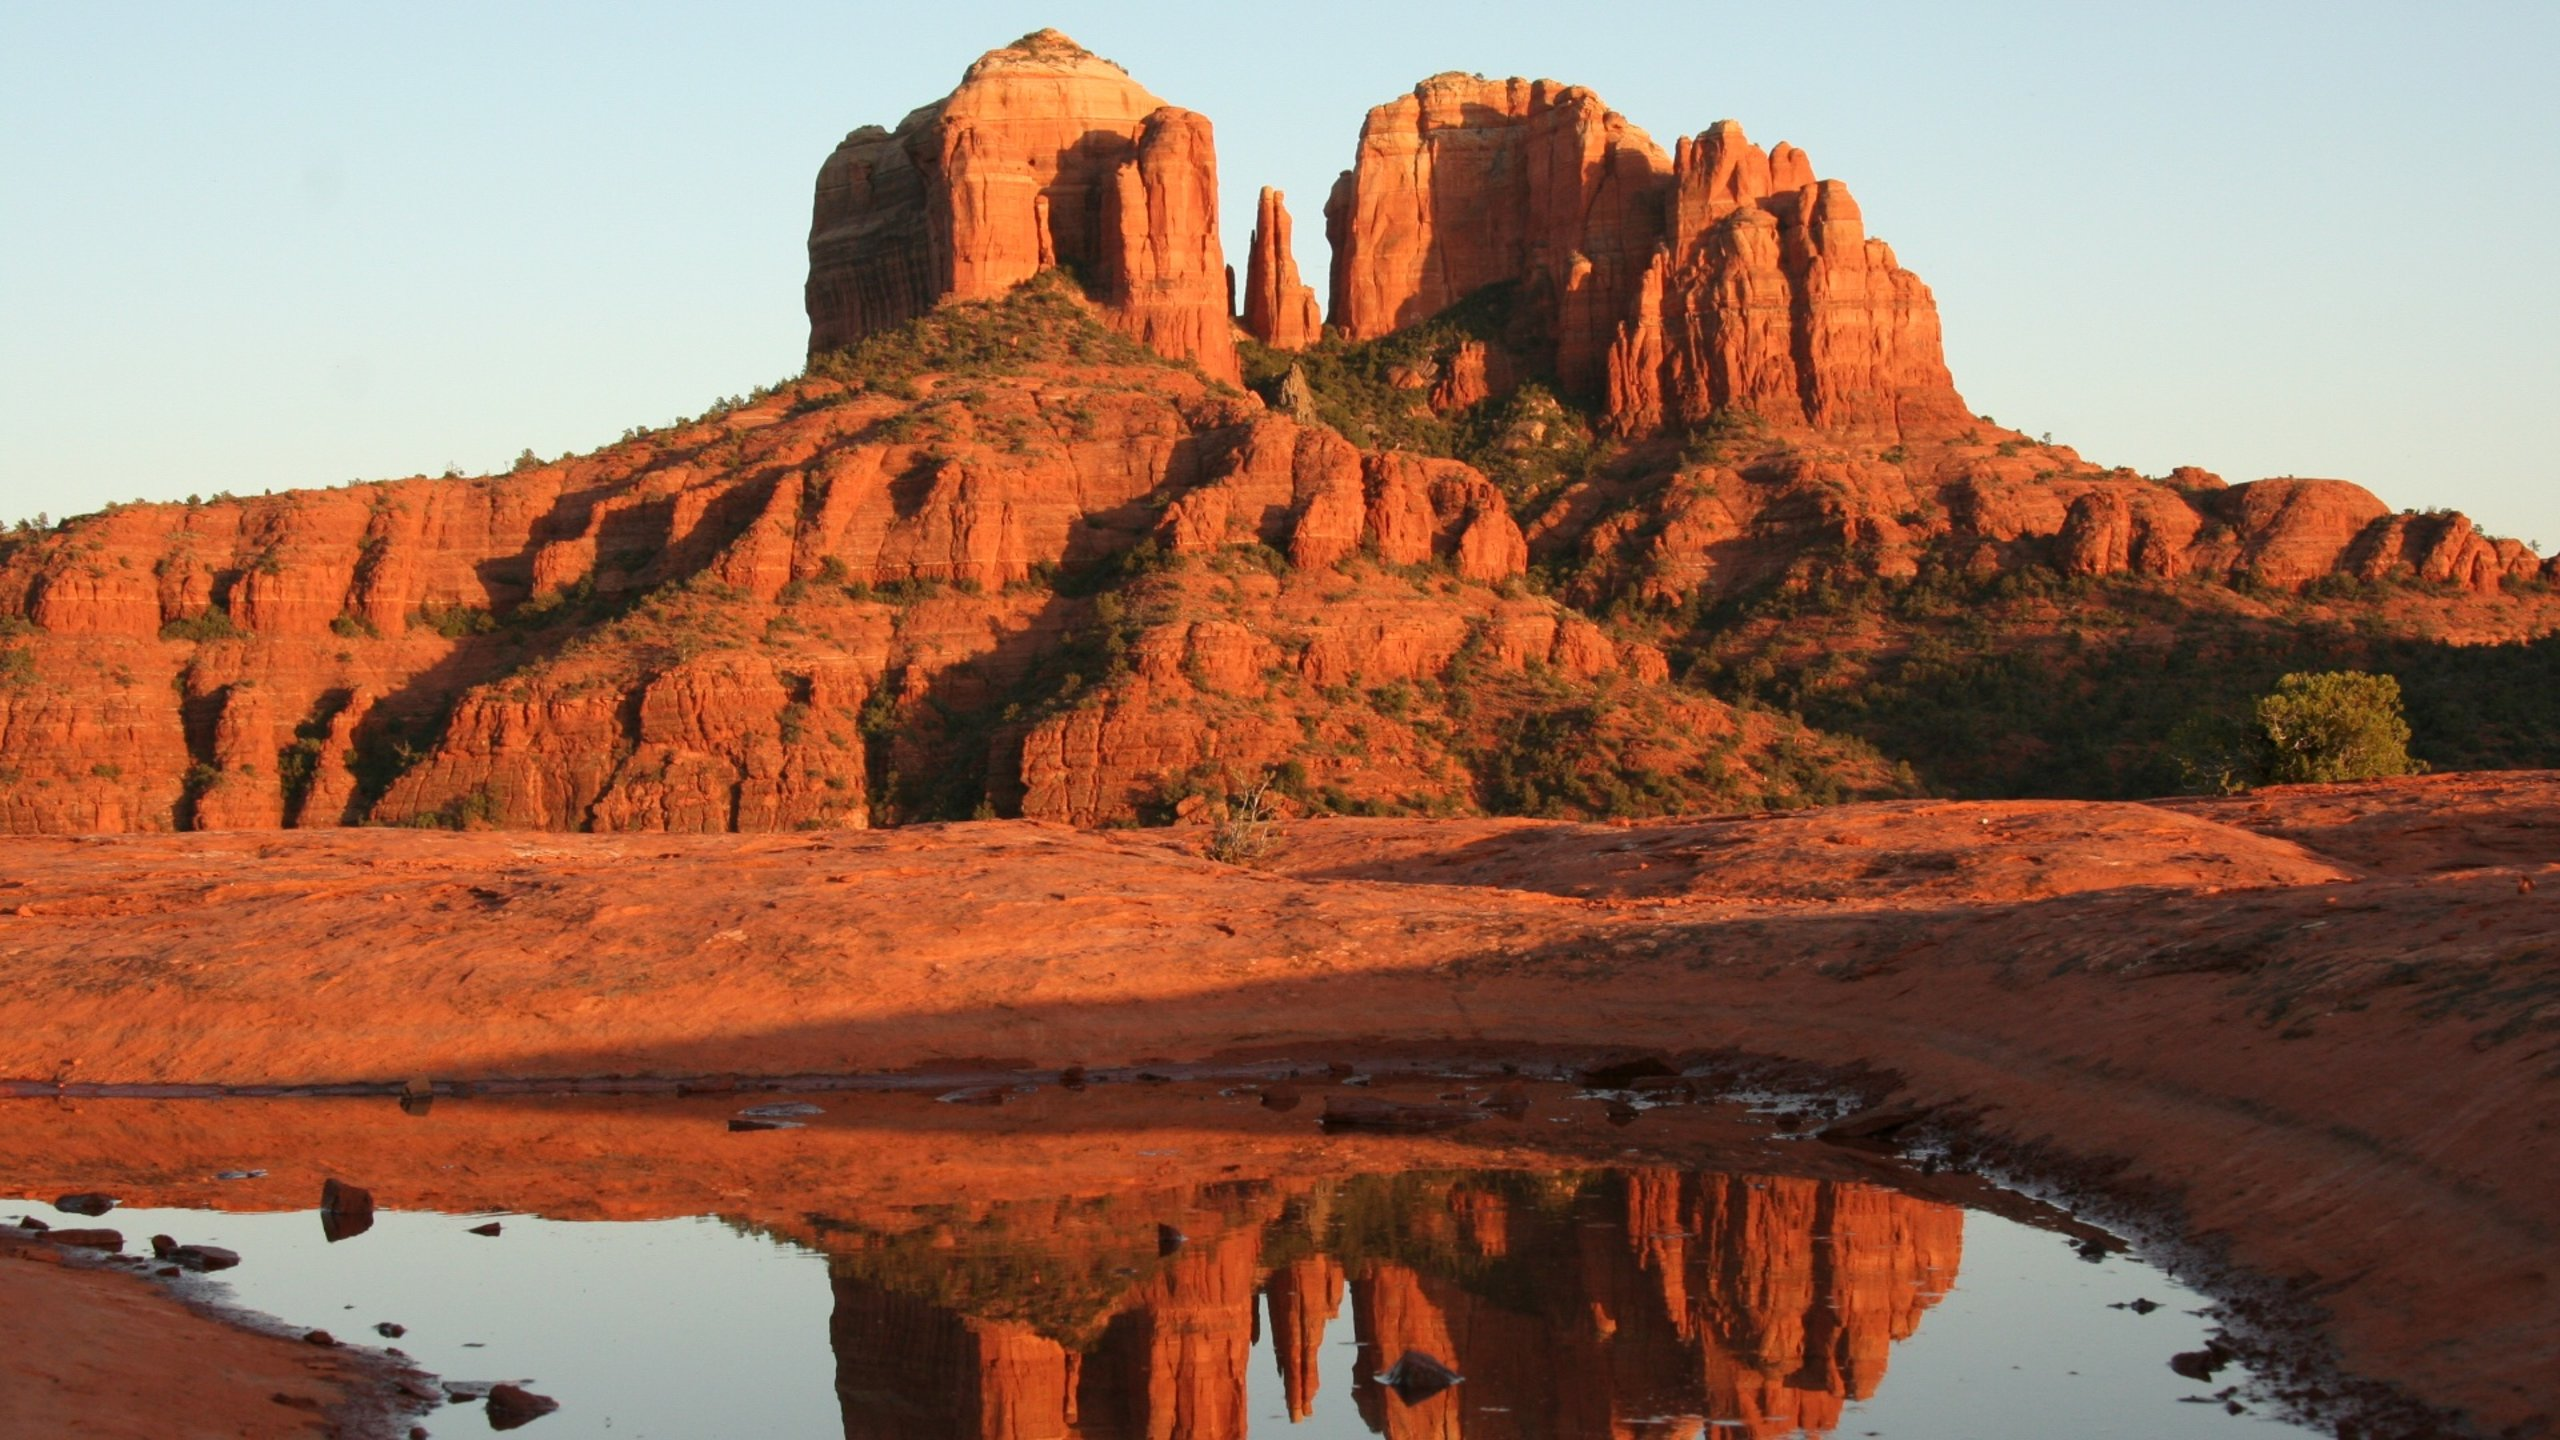 Sedona's skyline is distinctive for this crimson-hued sandstone formation, which stands like a giant sacred monument overlooking the red-rock landscape.